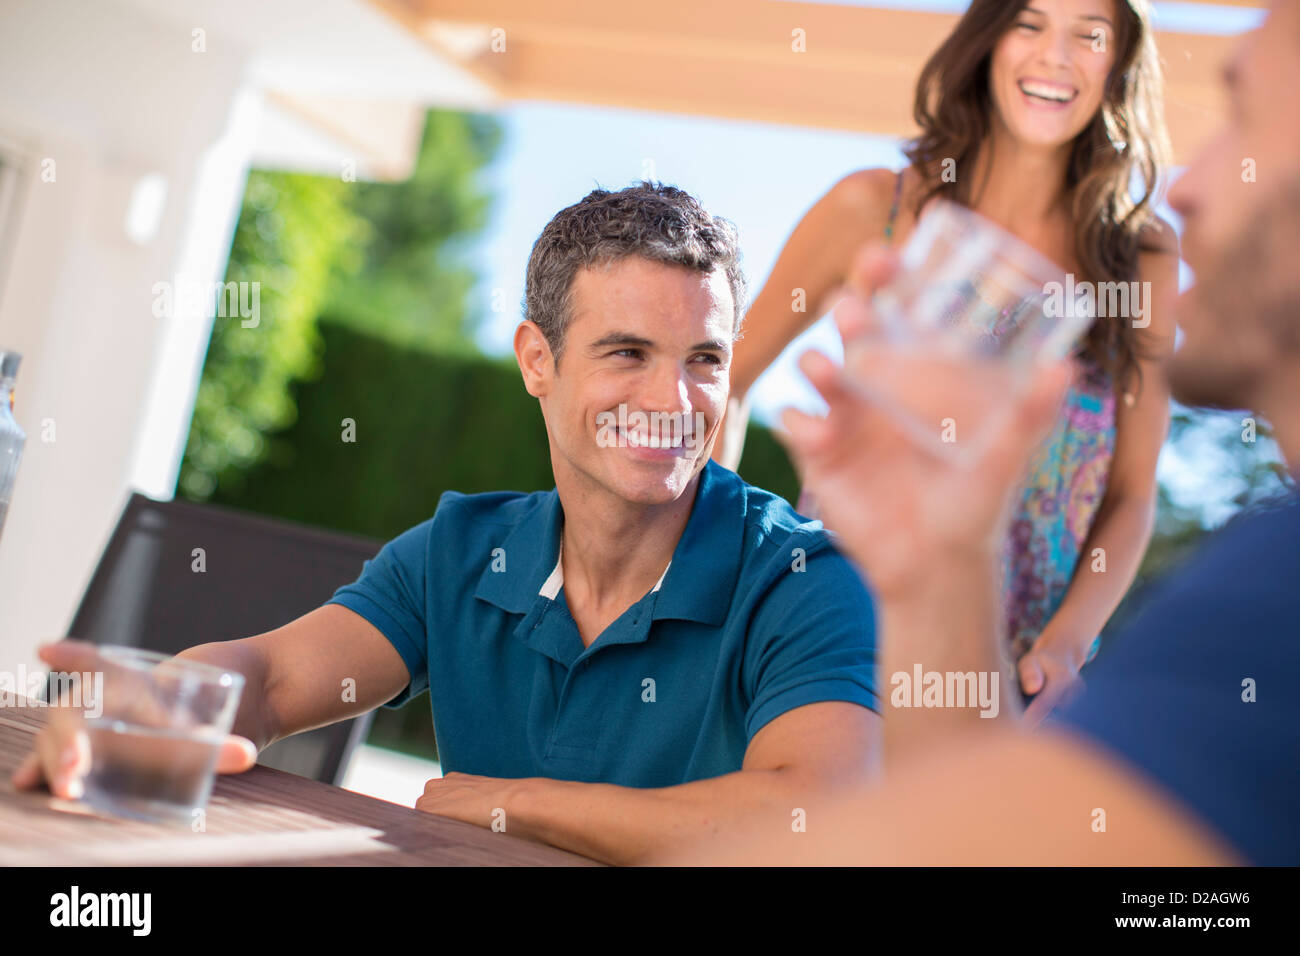 Men drinking water at table outdoors - Stock Image